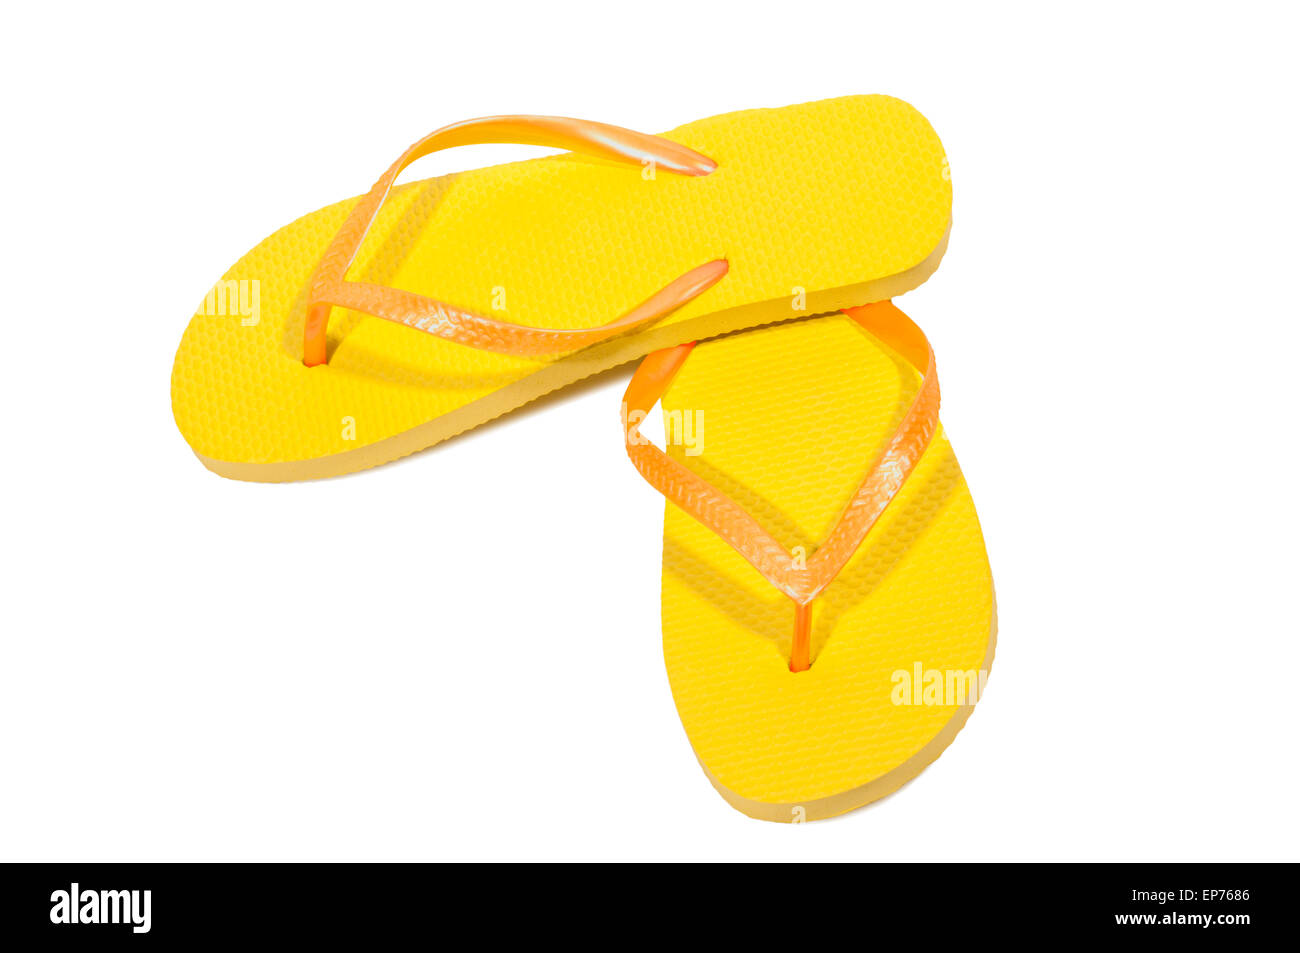 Brightly Colored Flip Flops For Summer Fun In The Sun.  On White Background Stock Photo